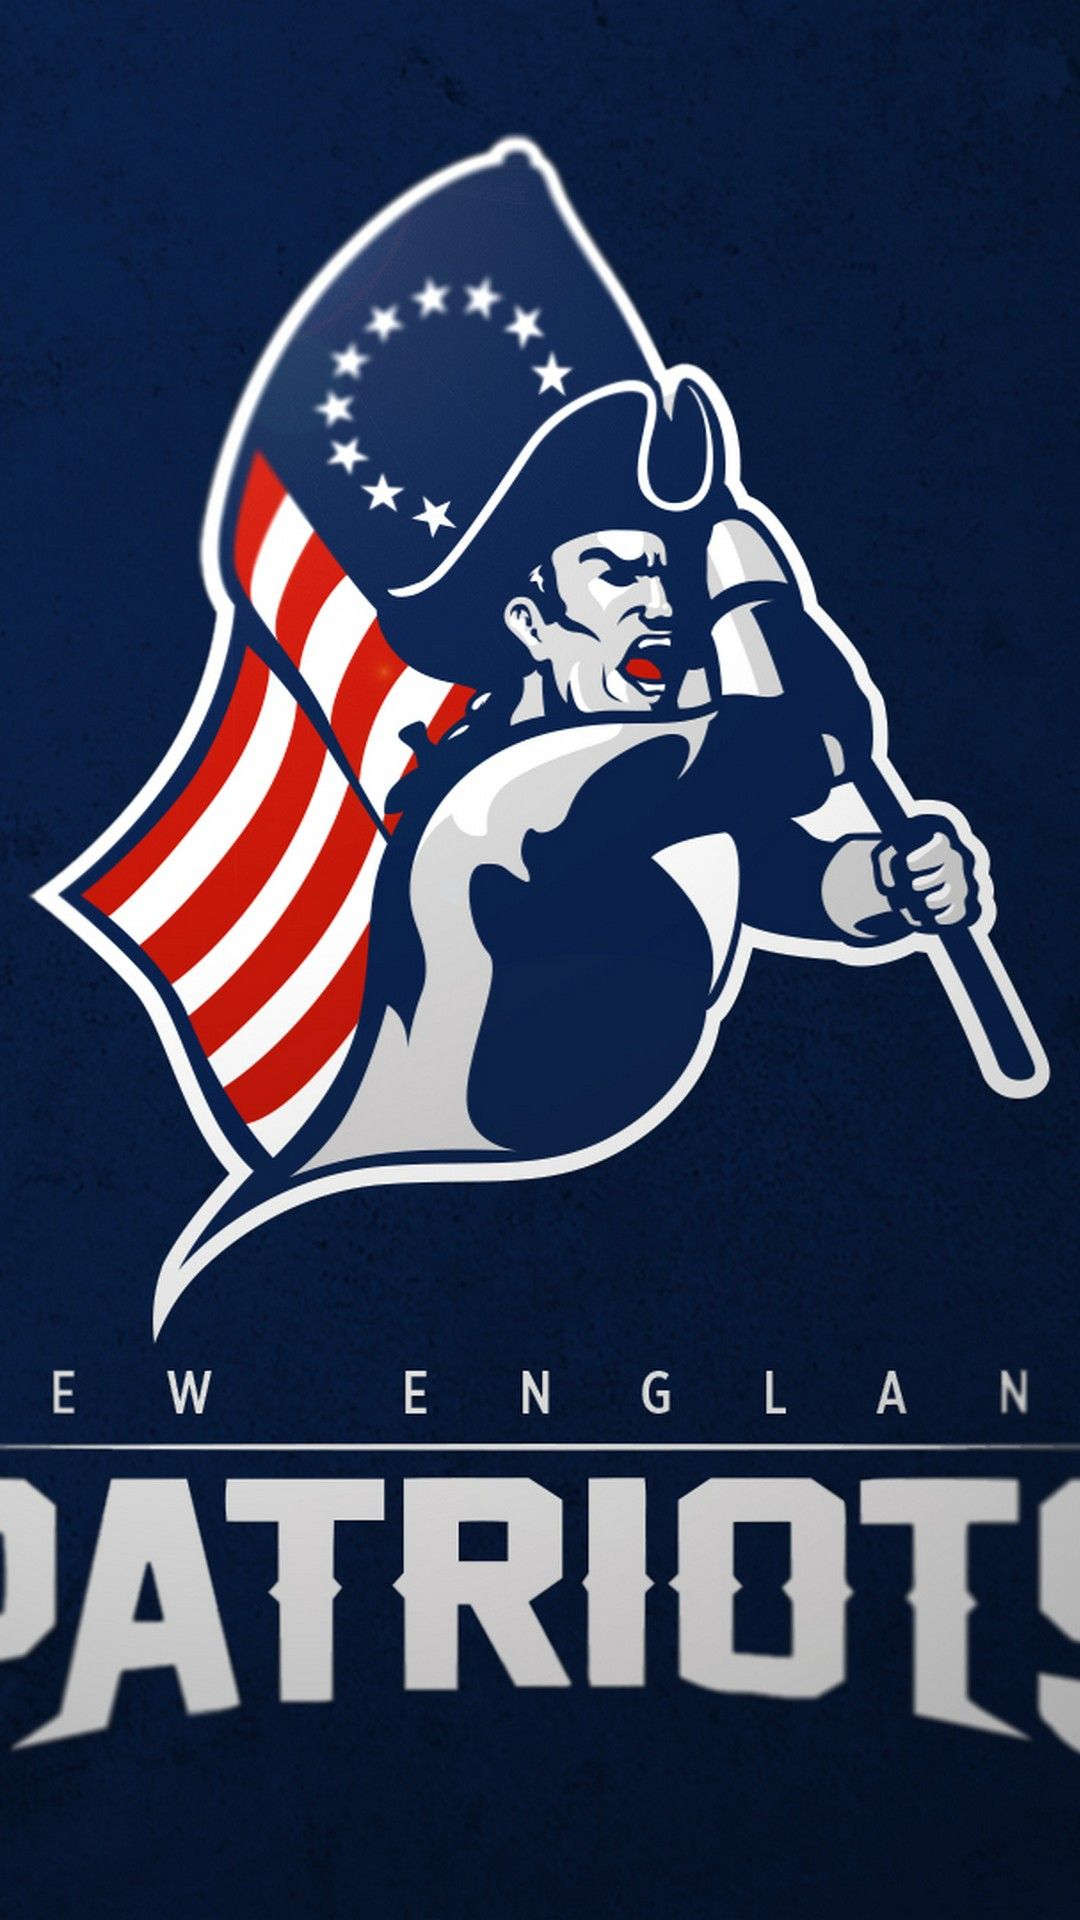 New England Patriots Iphone Wallpaper Hd Best Nfl Wallpaper In 2020 New England Patriots Logo New England Patriots Wallpaper New England Patriots